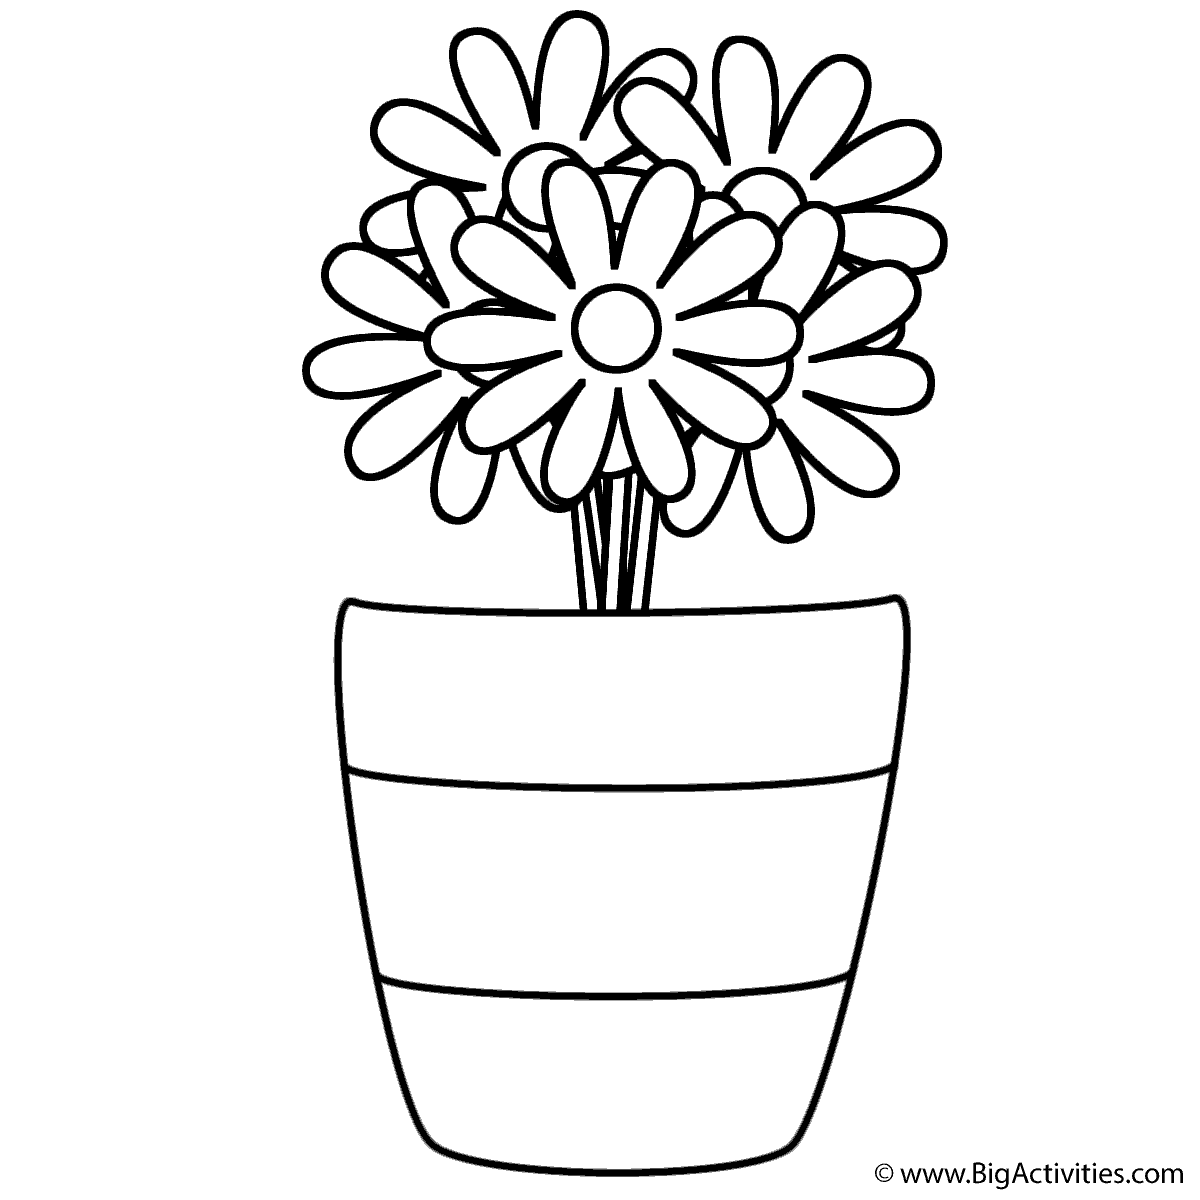 flowers in vase with stripes coloring page mother u0027s day